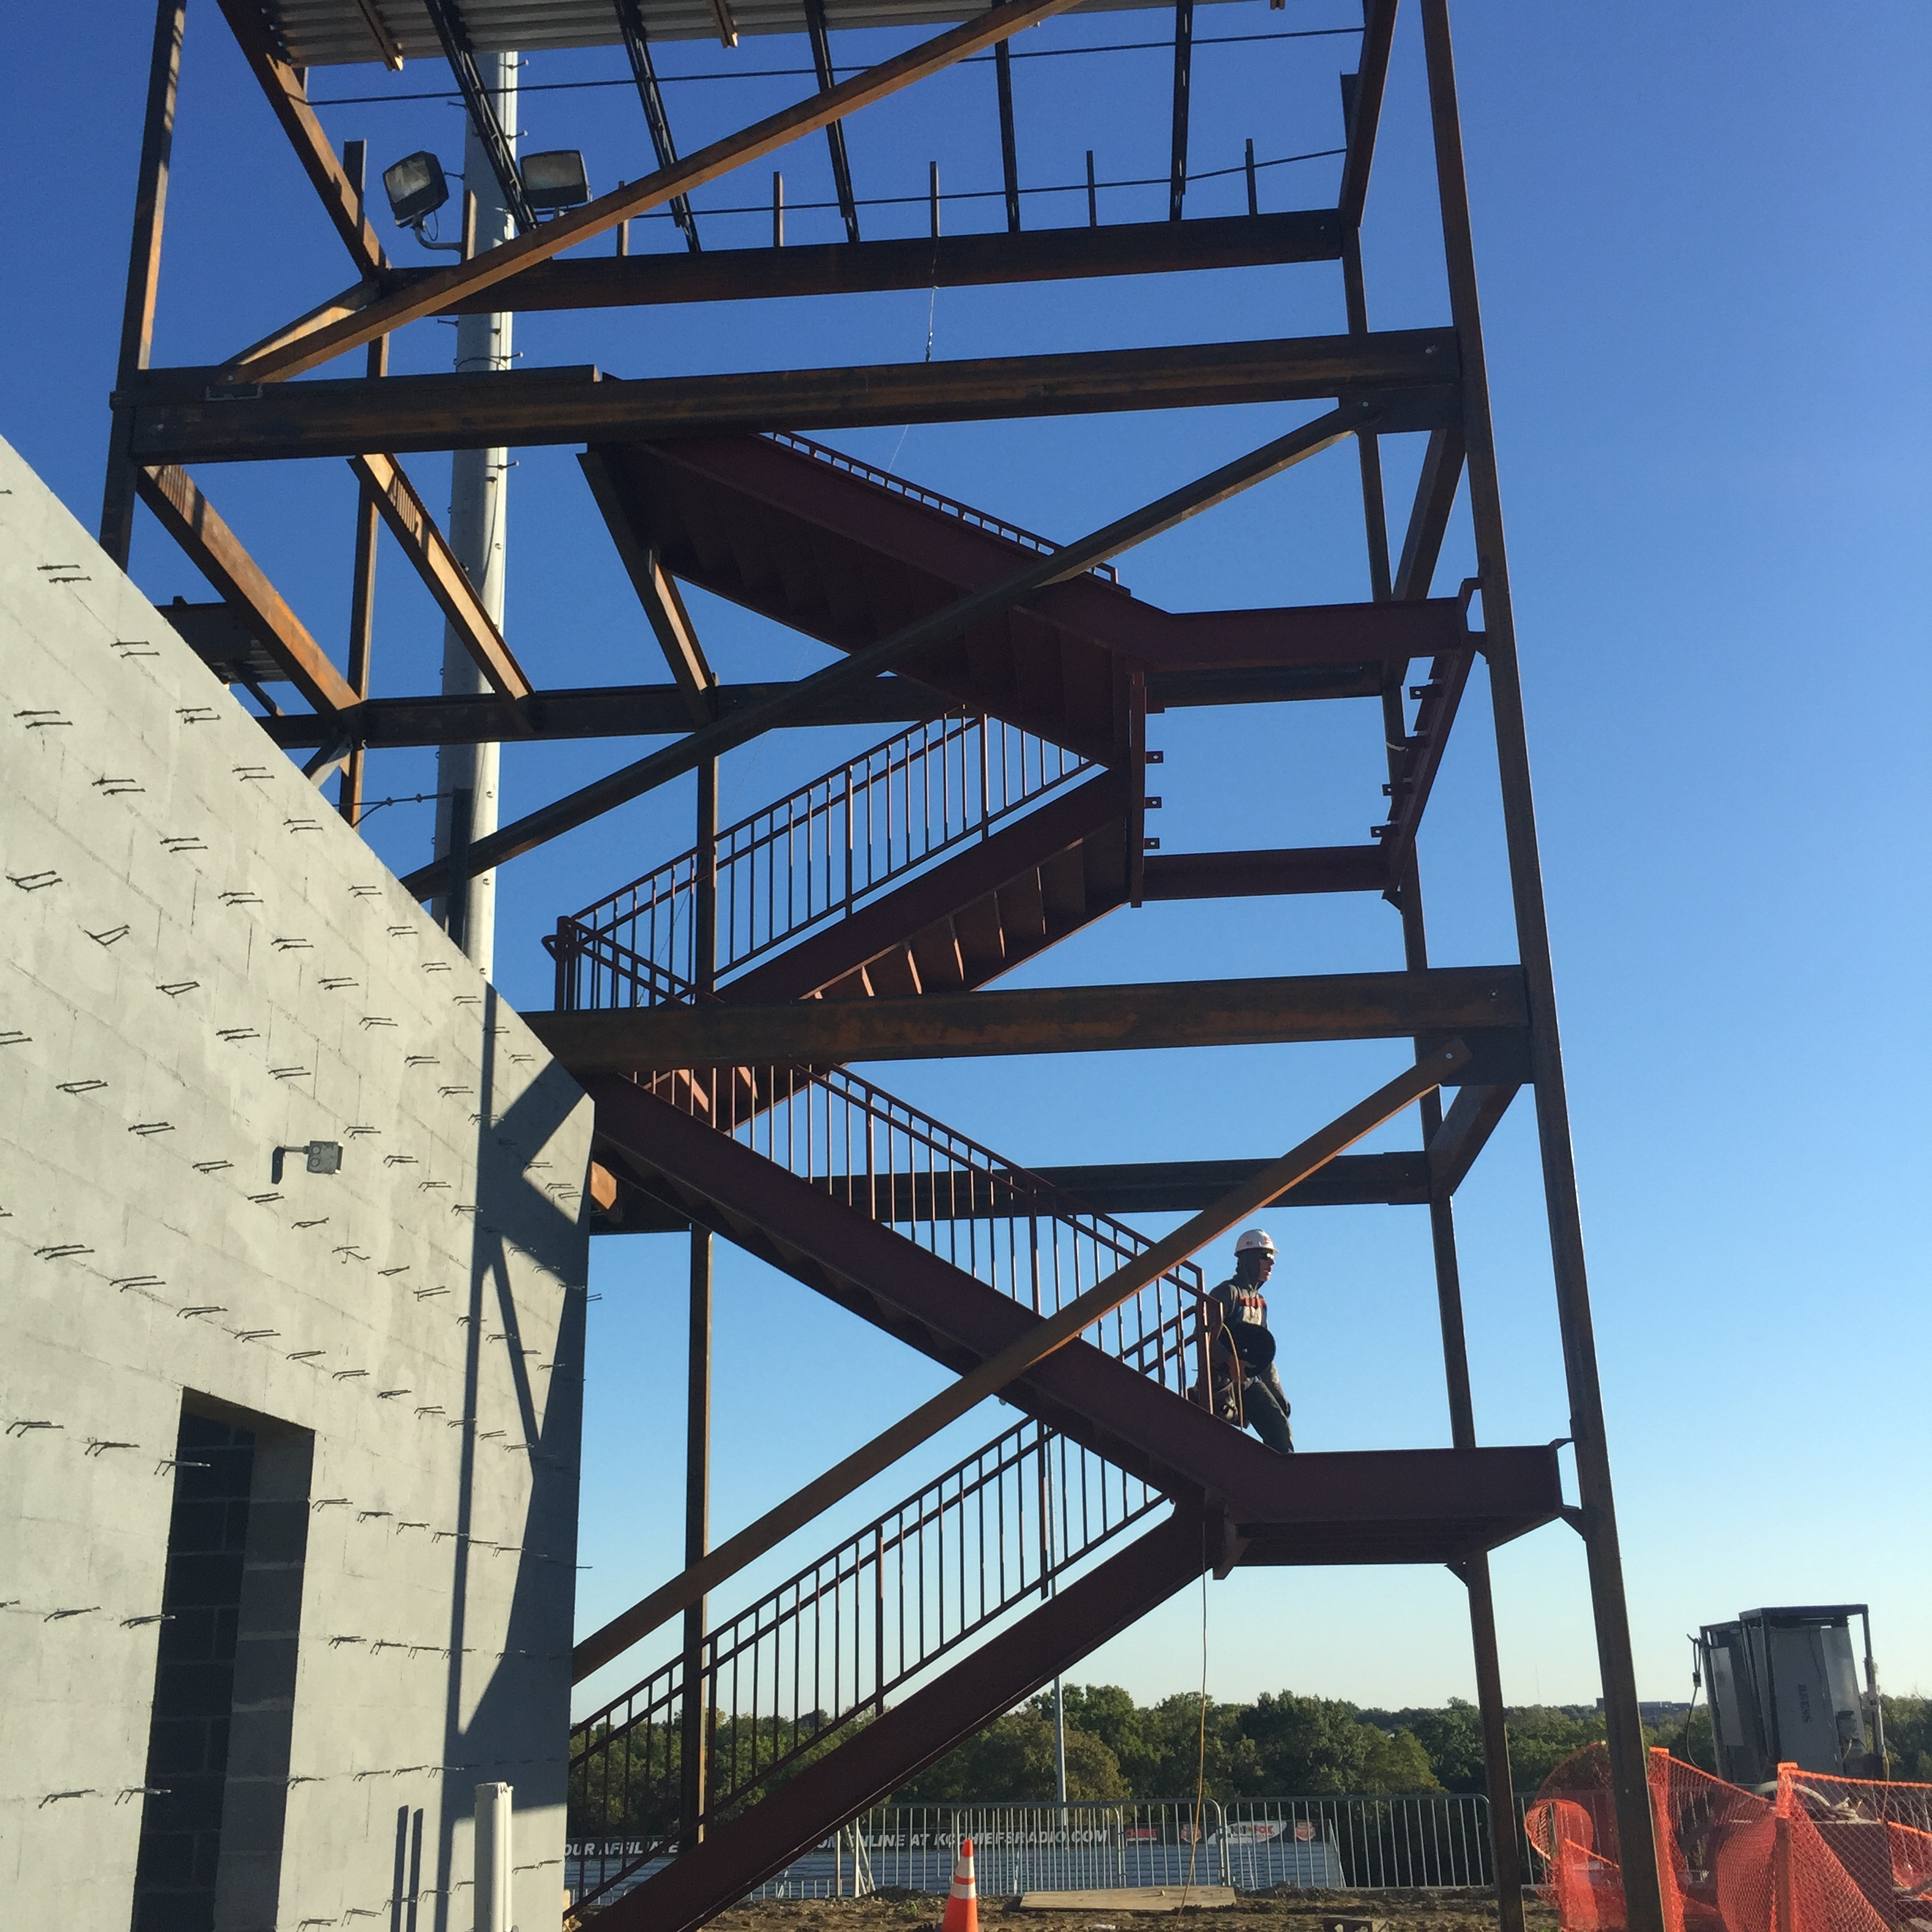 Industrial stairs require the highest safety standards, and structural steel holds up.